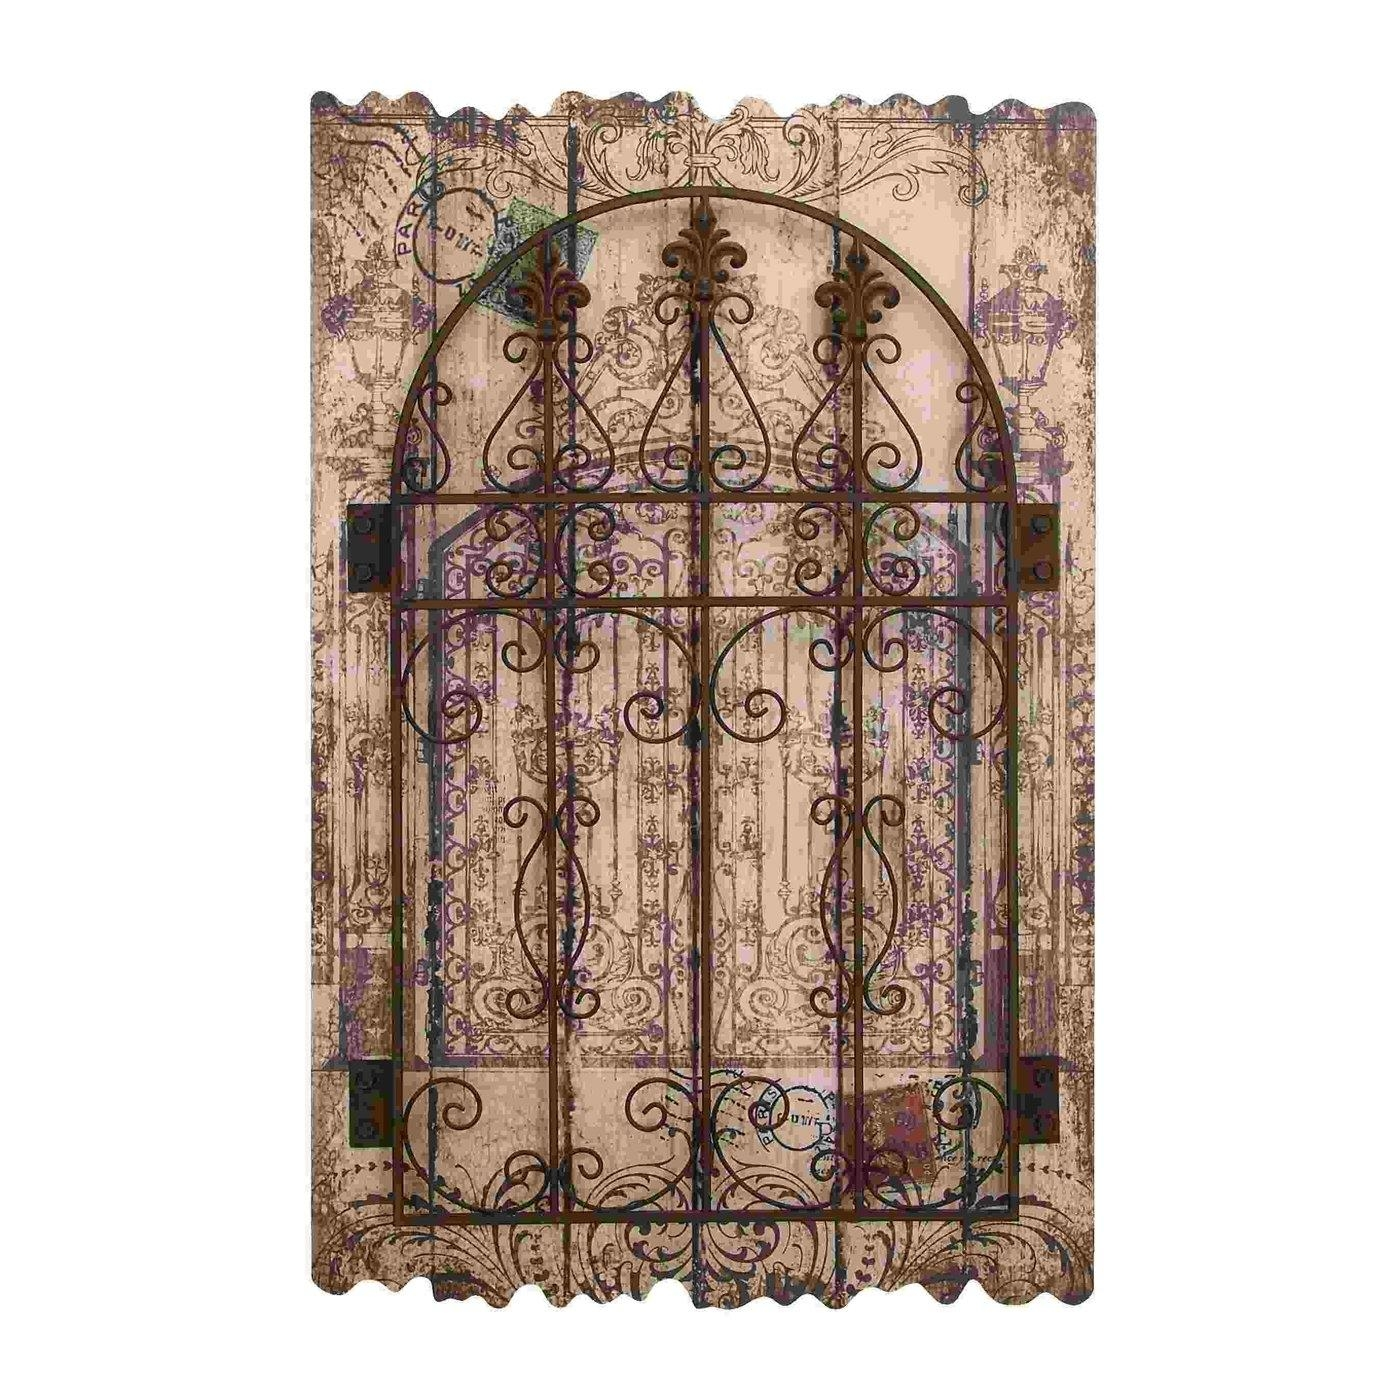 Wall Art Designs: Metal And Wood Wall Art Tuscan Carved Garden Pertaining To Metal Gate Wall Art (View 5 of 20)